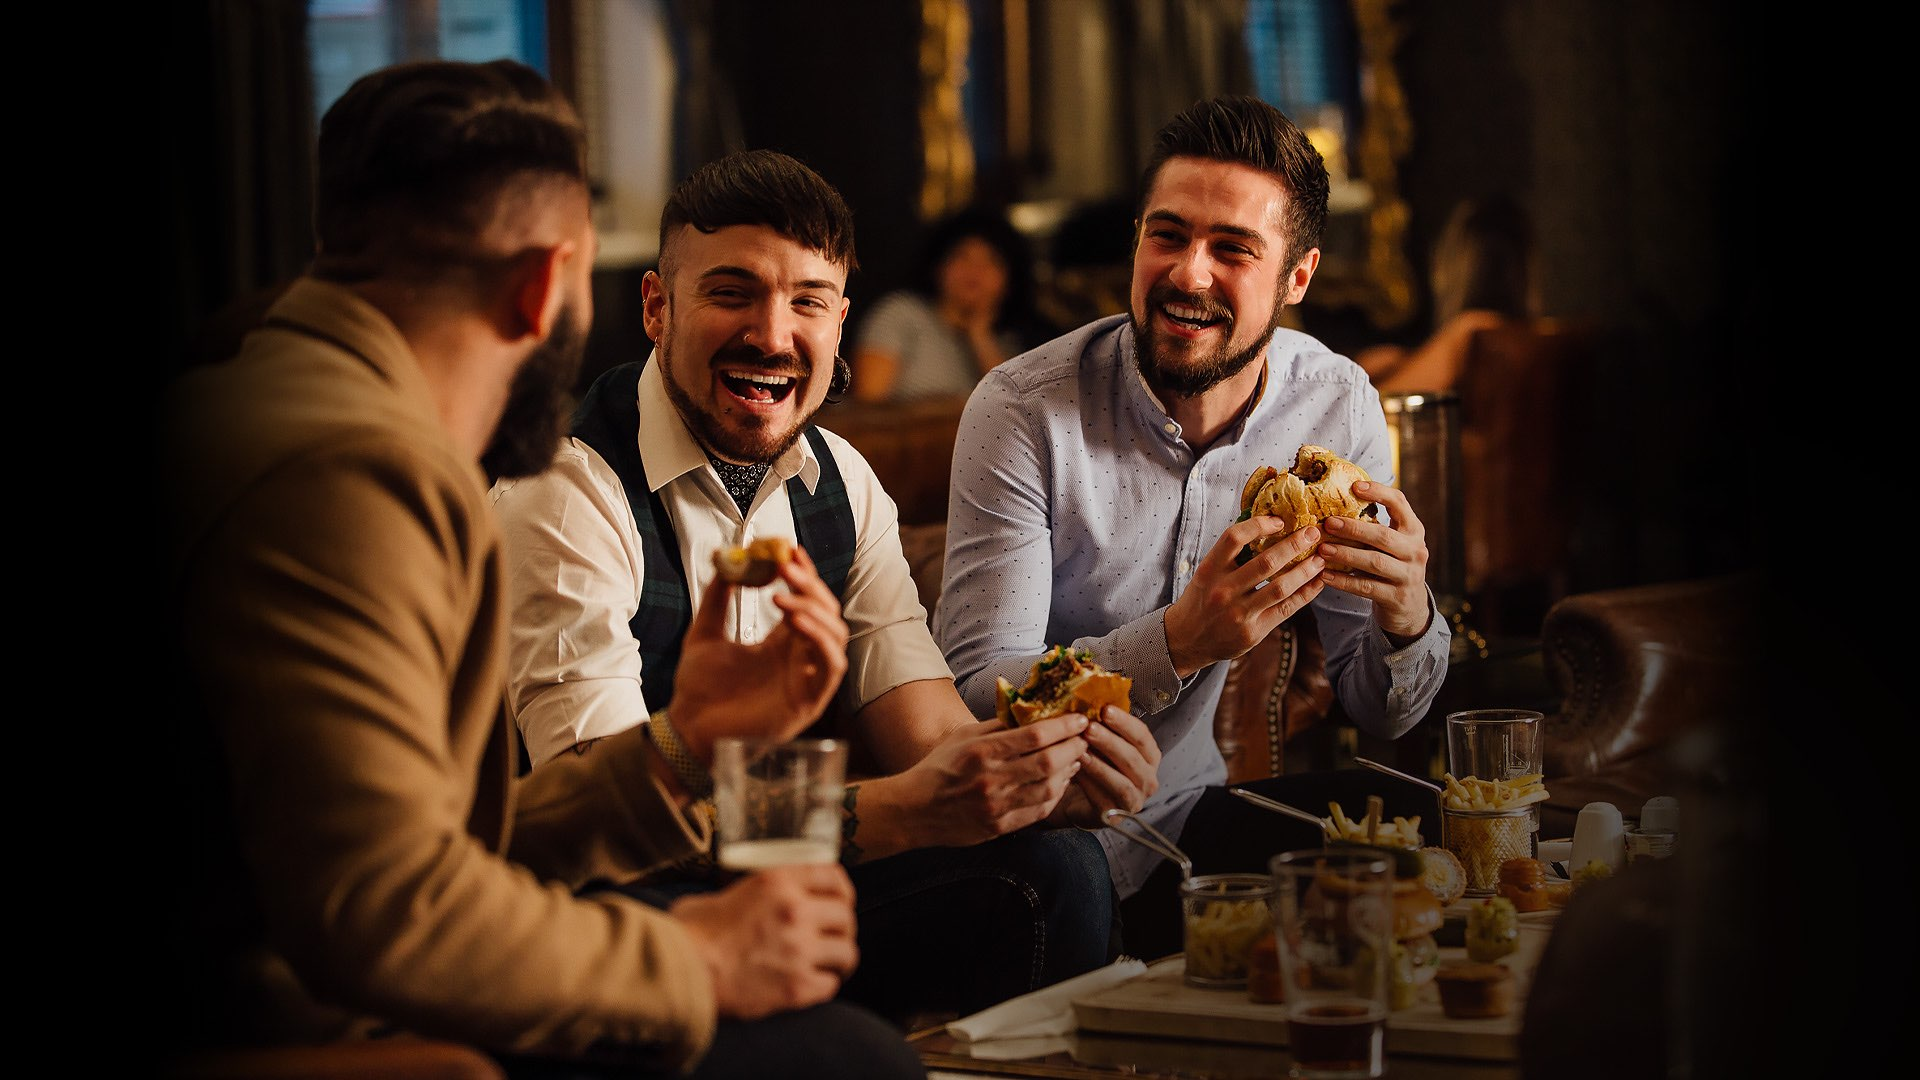 Group of guys enjoying appetizers